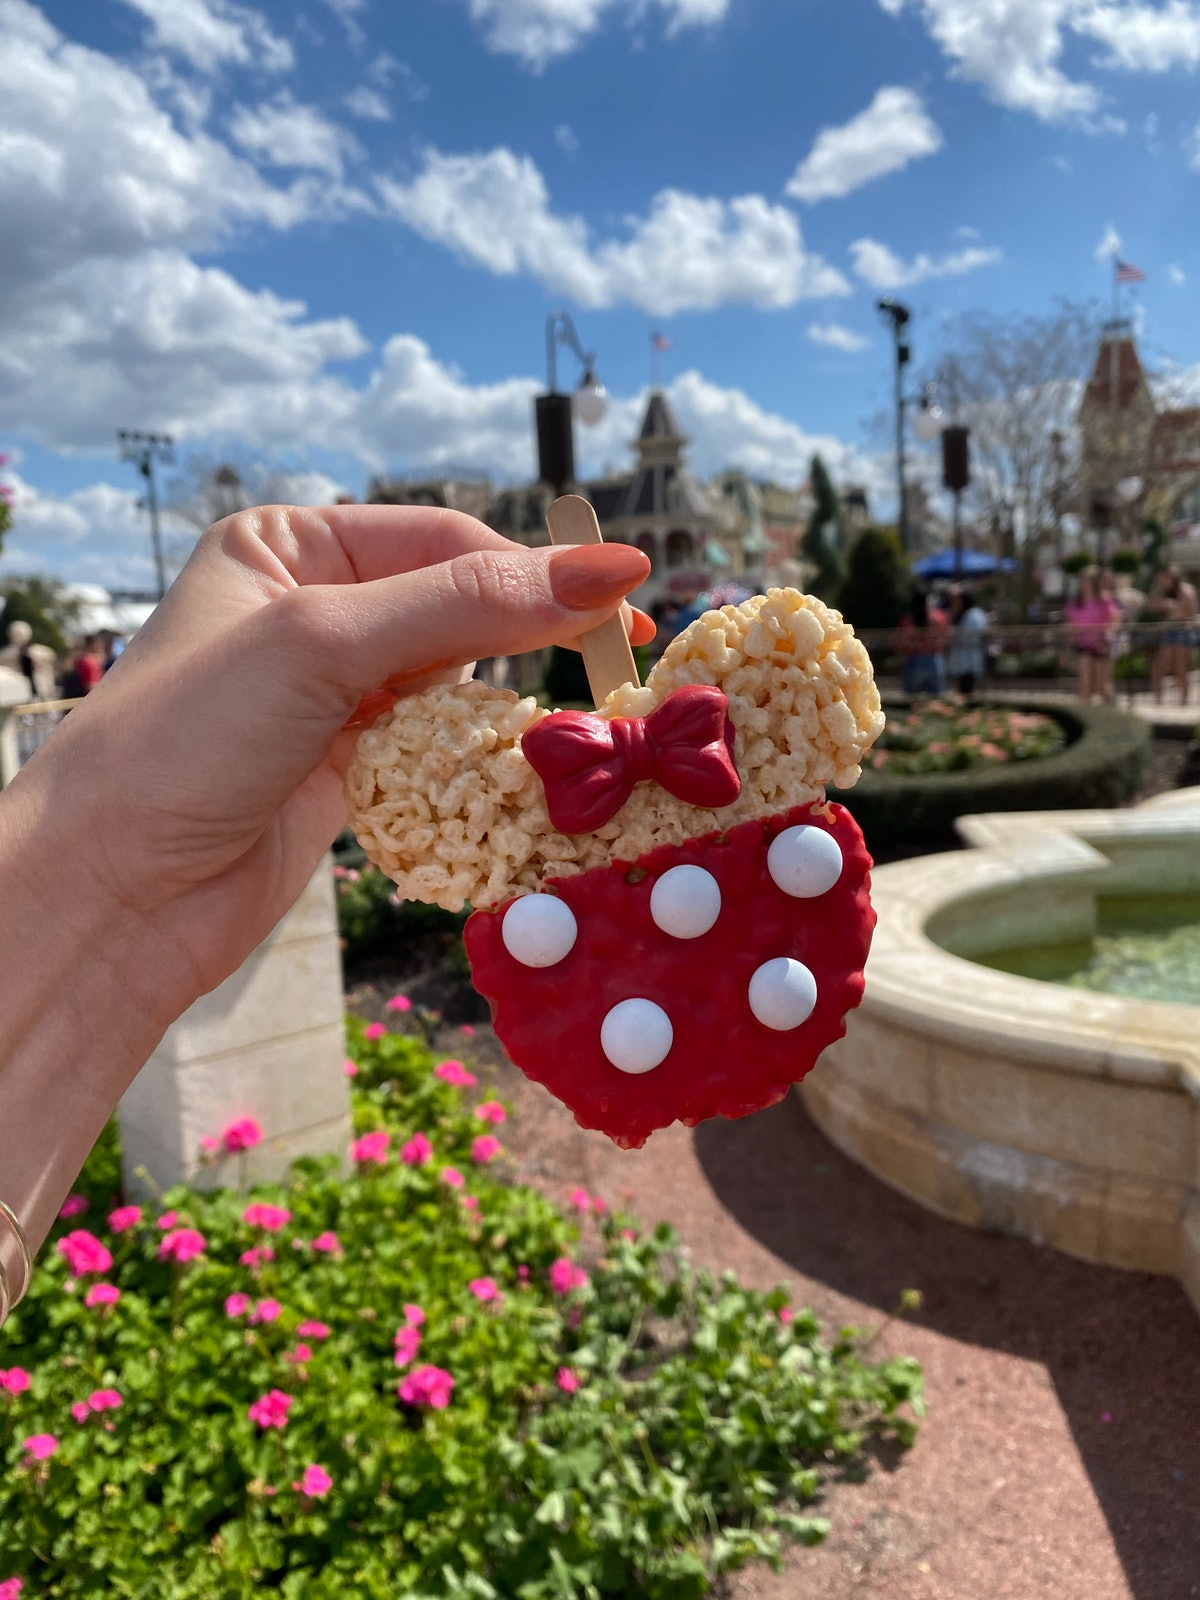 The Disney Food Blog IG account is full of so many foodie posts.